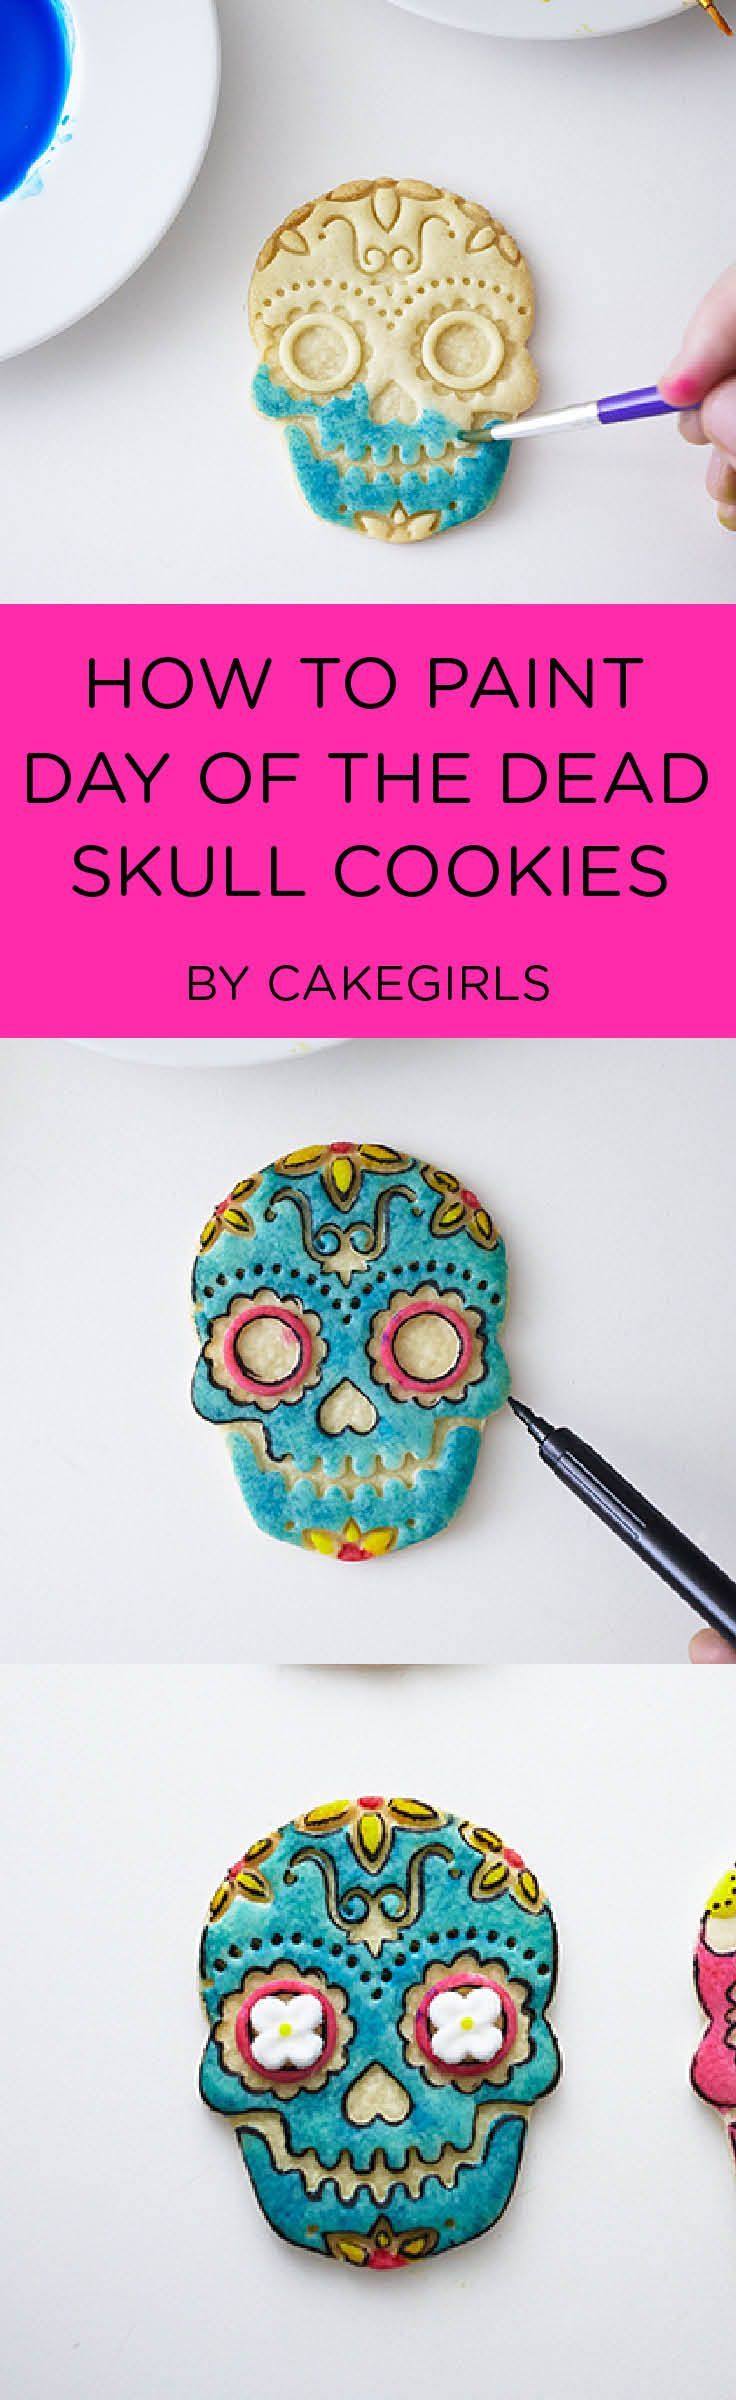 Stamped and Painted Day of the Dead Sugar Cookies | See the Step x Step!